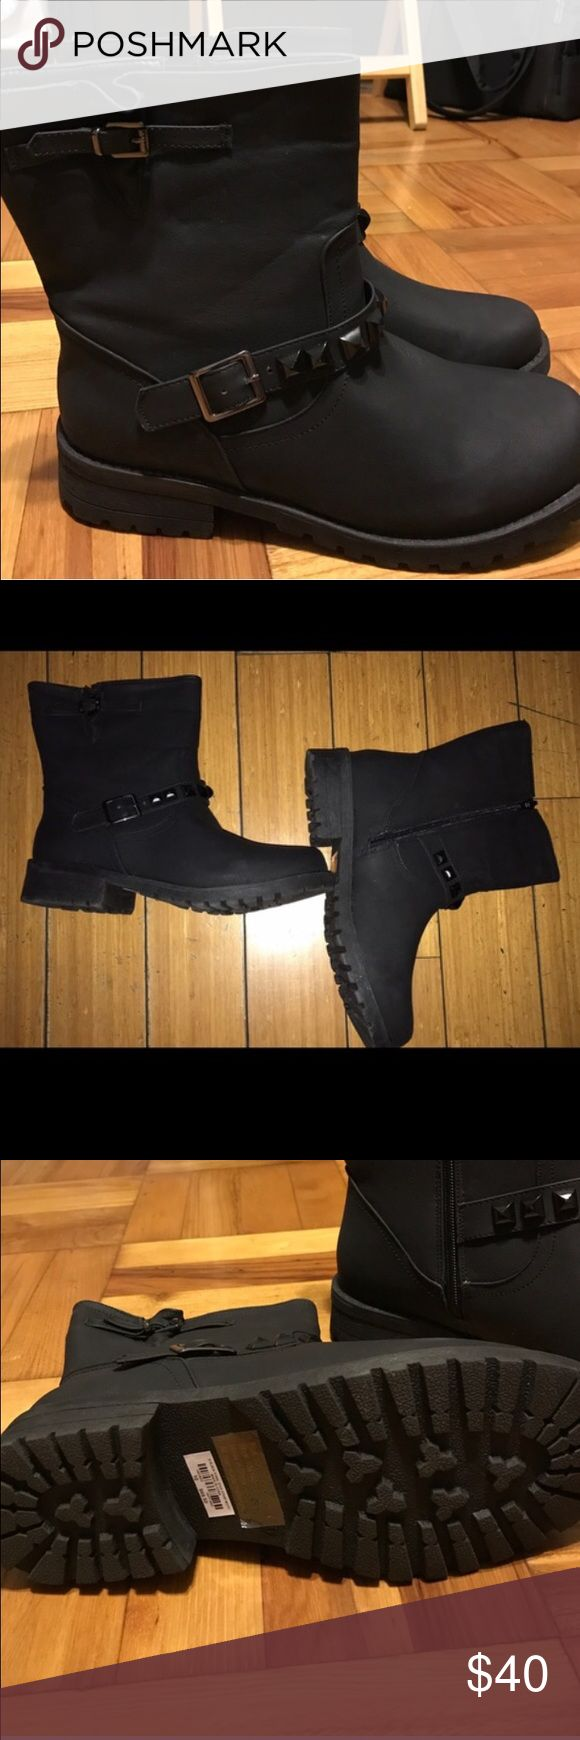 Black Moto Wide Ankle Boots BRAND NEW. NEVER WORN. They didn't fit! I guess I needed a 10.5. Inside zipper goes all the way down. Black matte color. Strong grip soles. Perfect for rain. Cool studded strap! torrid Shoes Ankle Boots & Booties